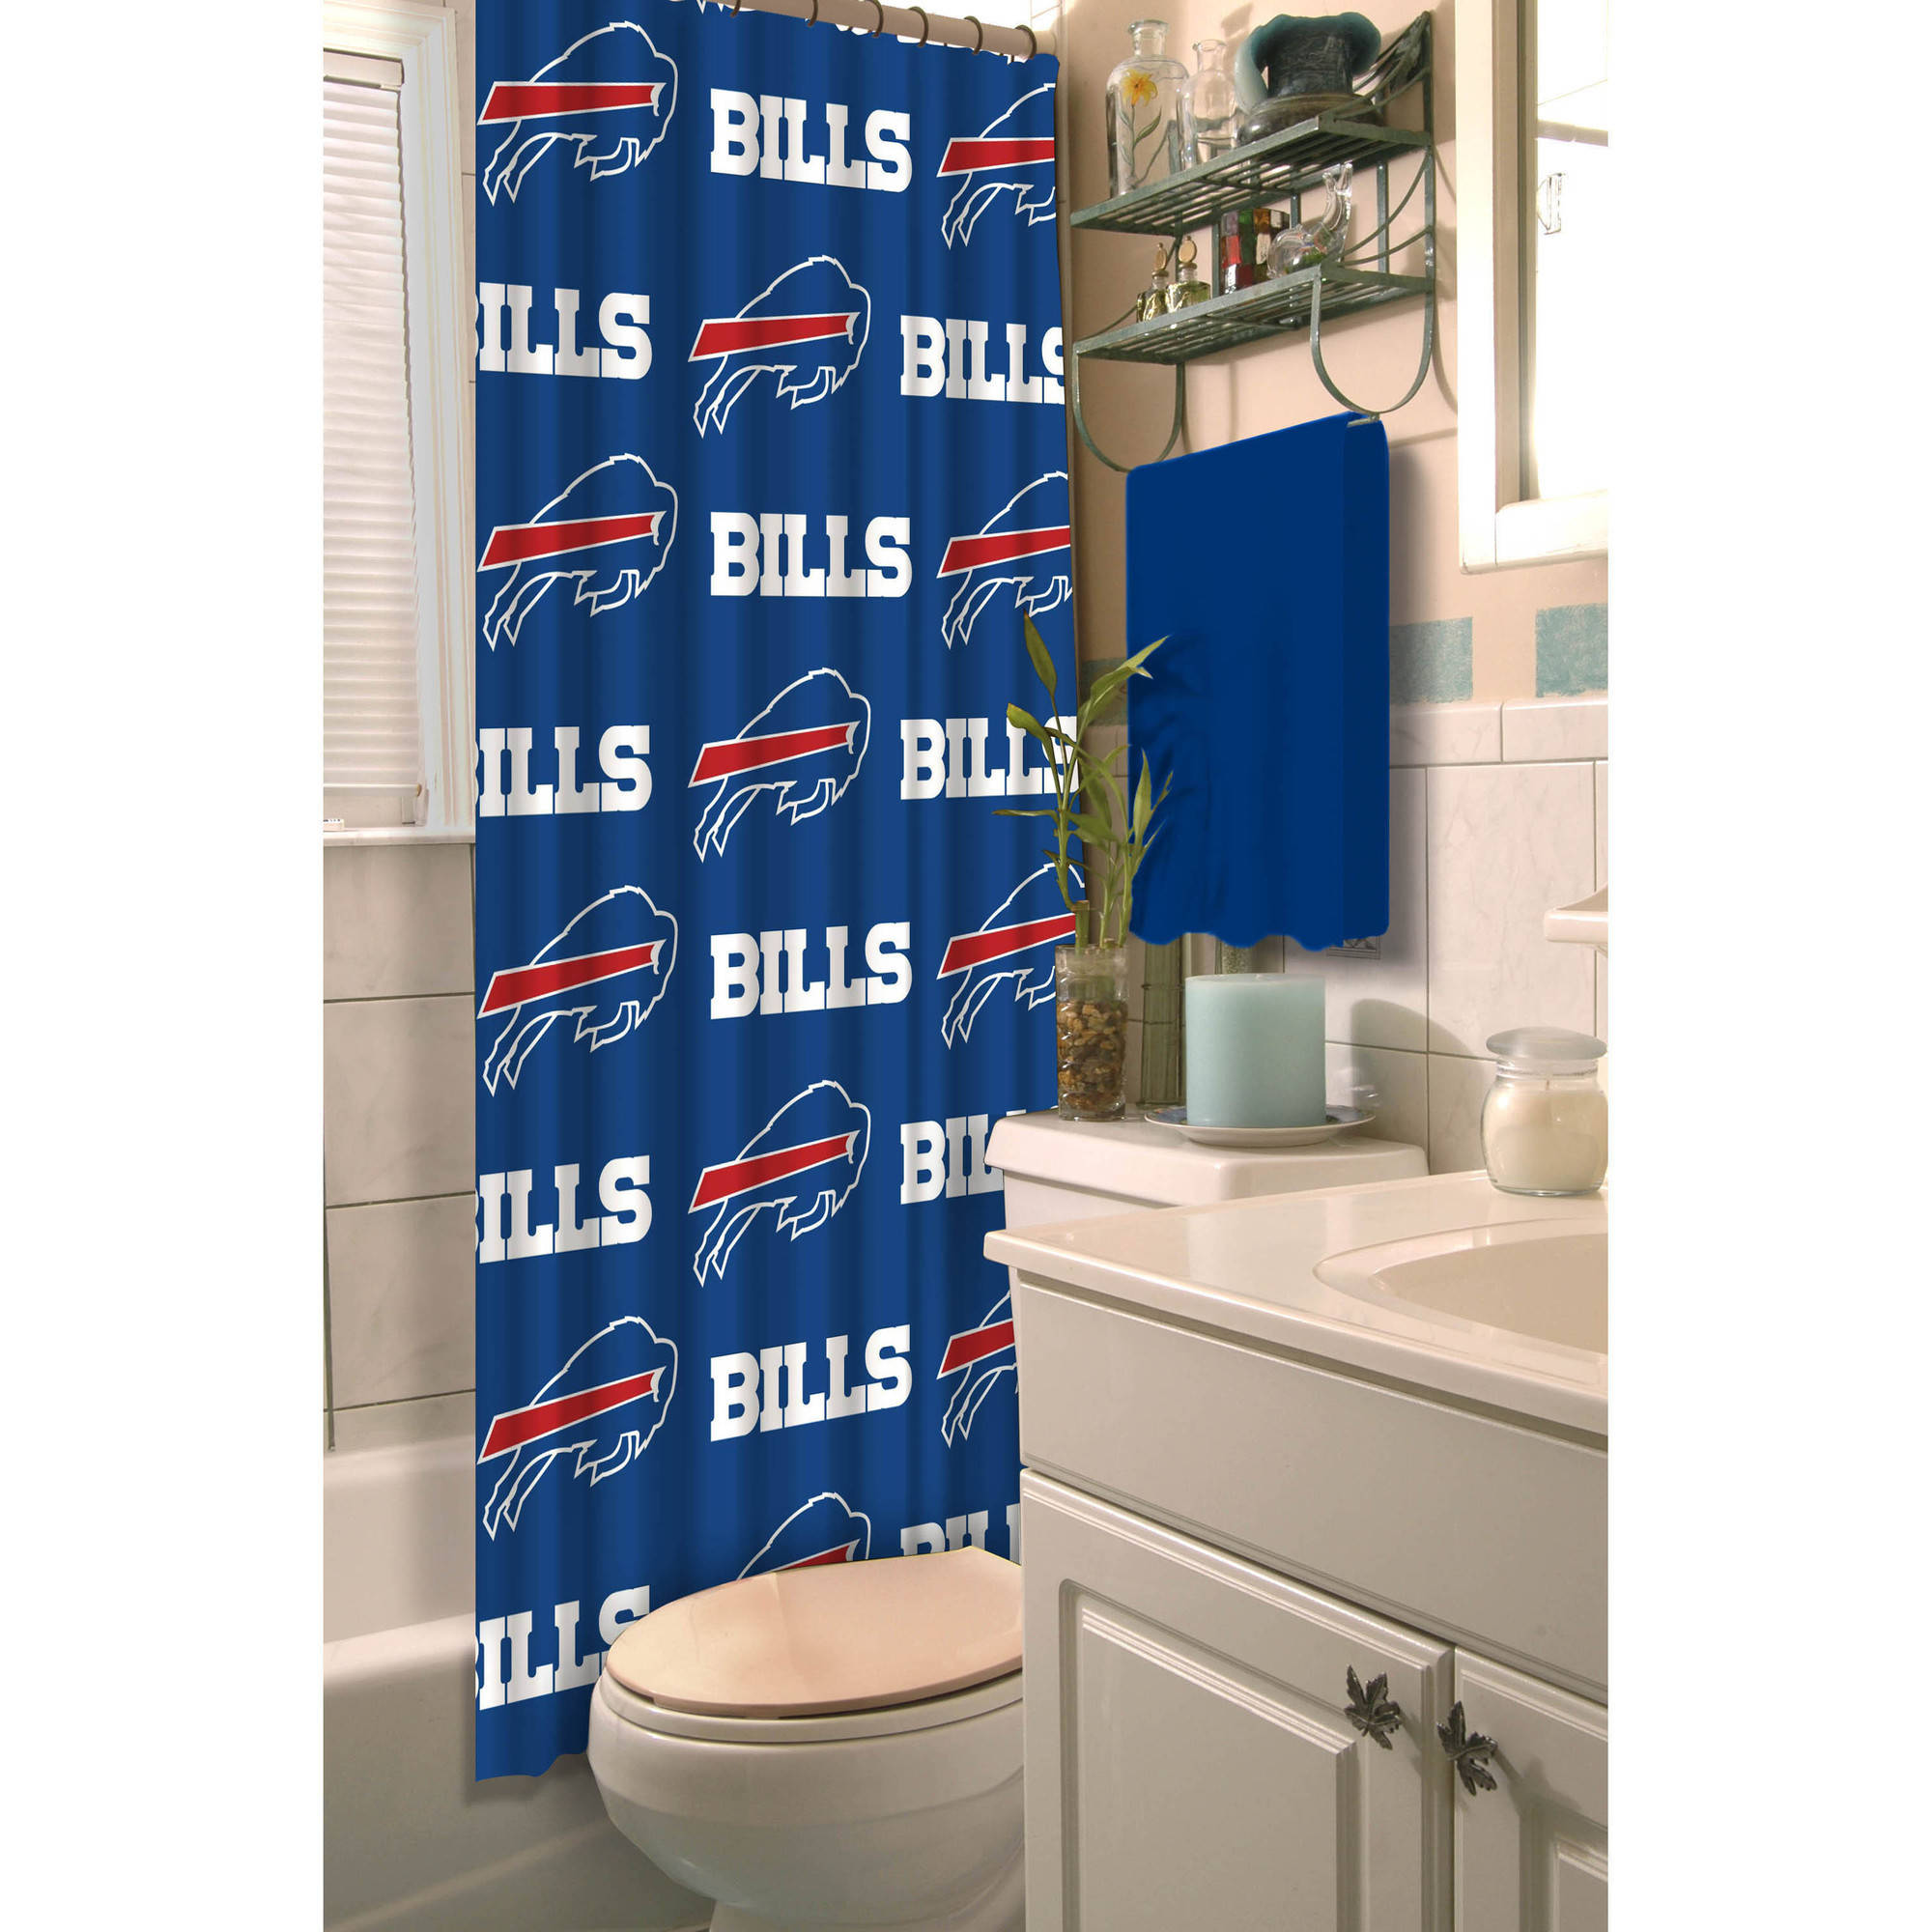 NFL Shower Curtain, Bills